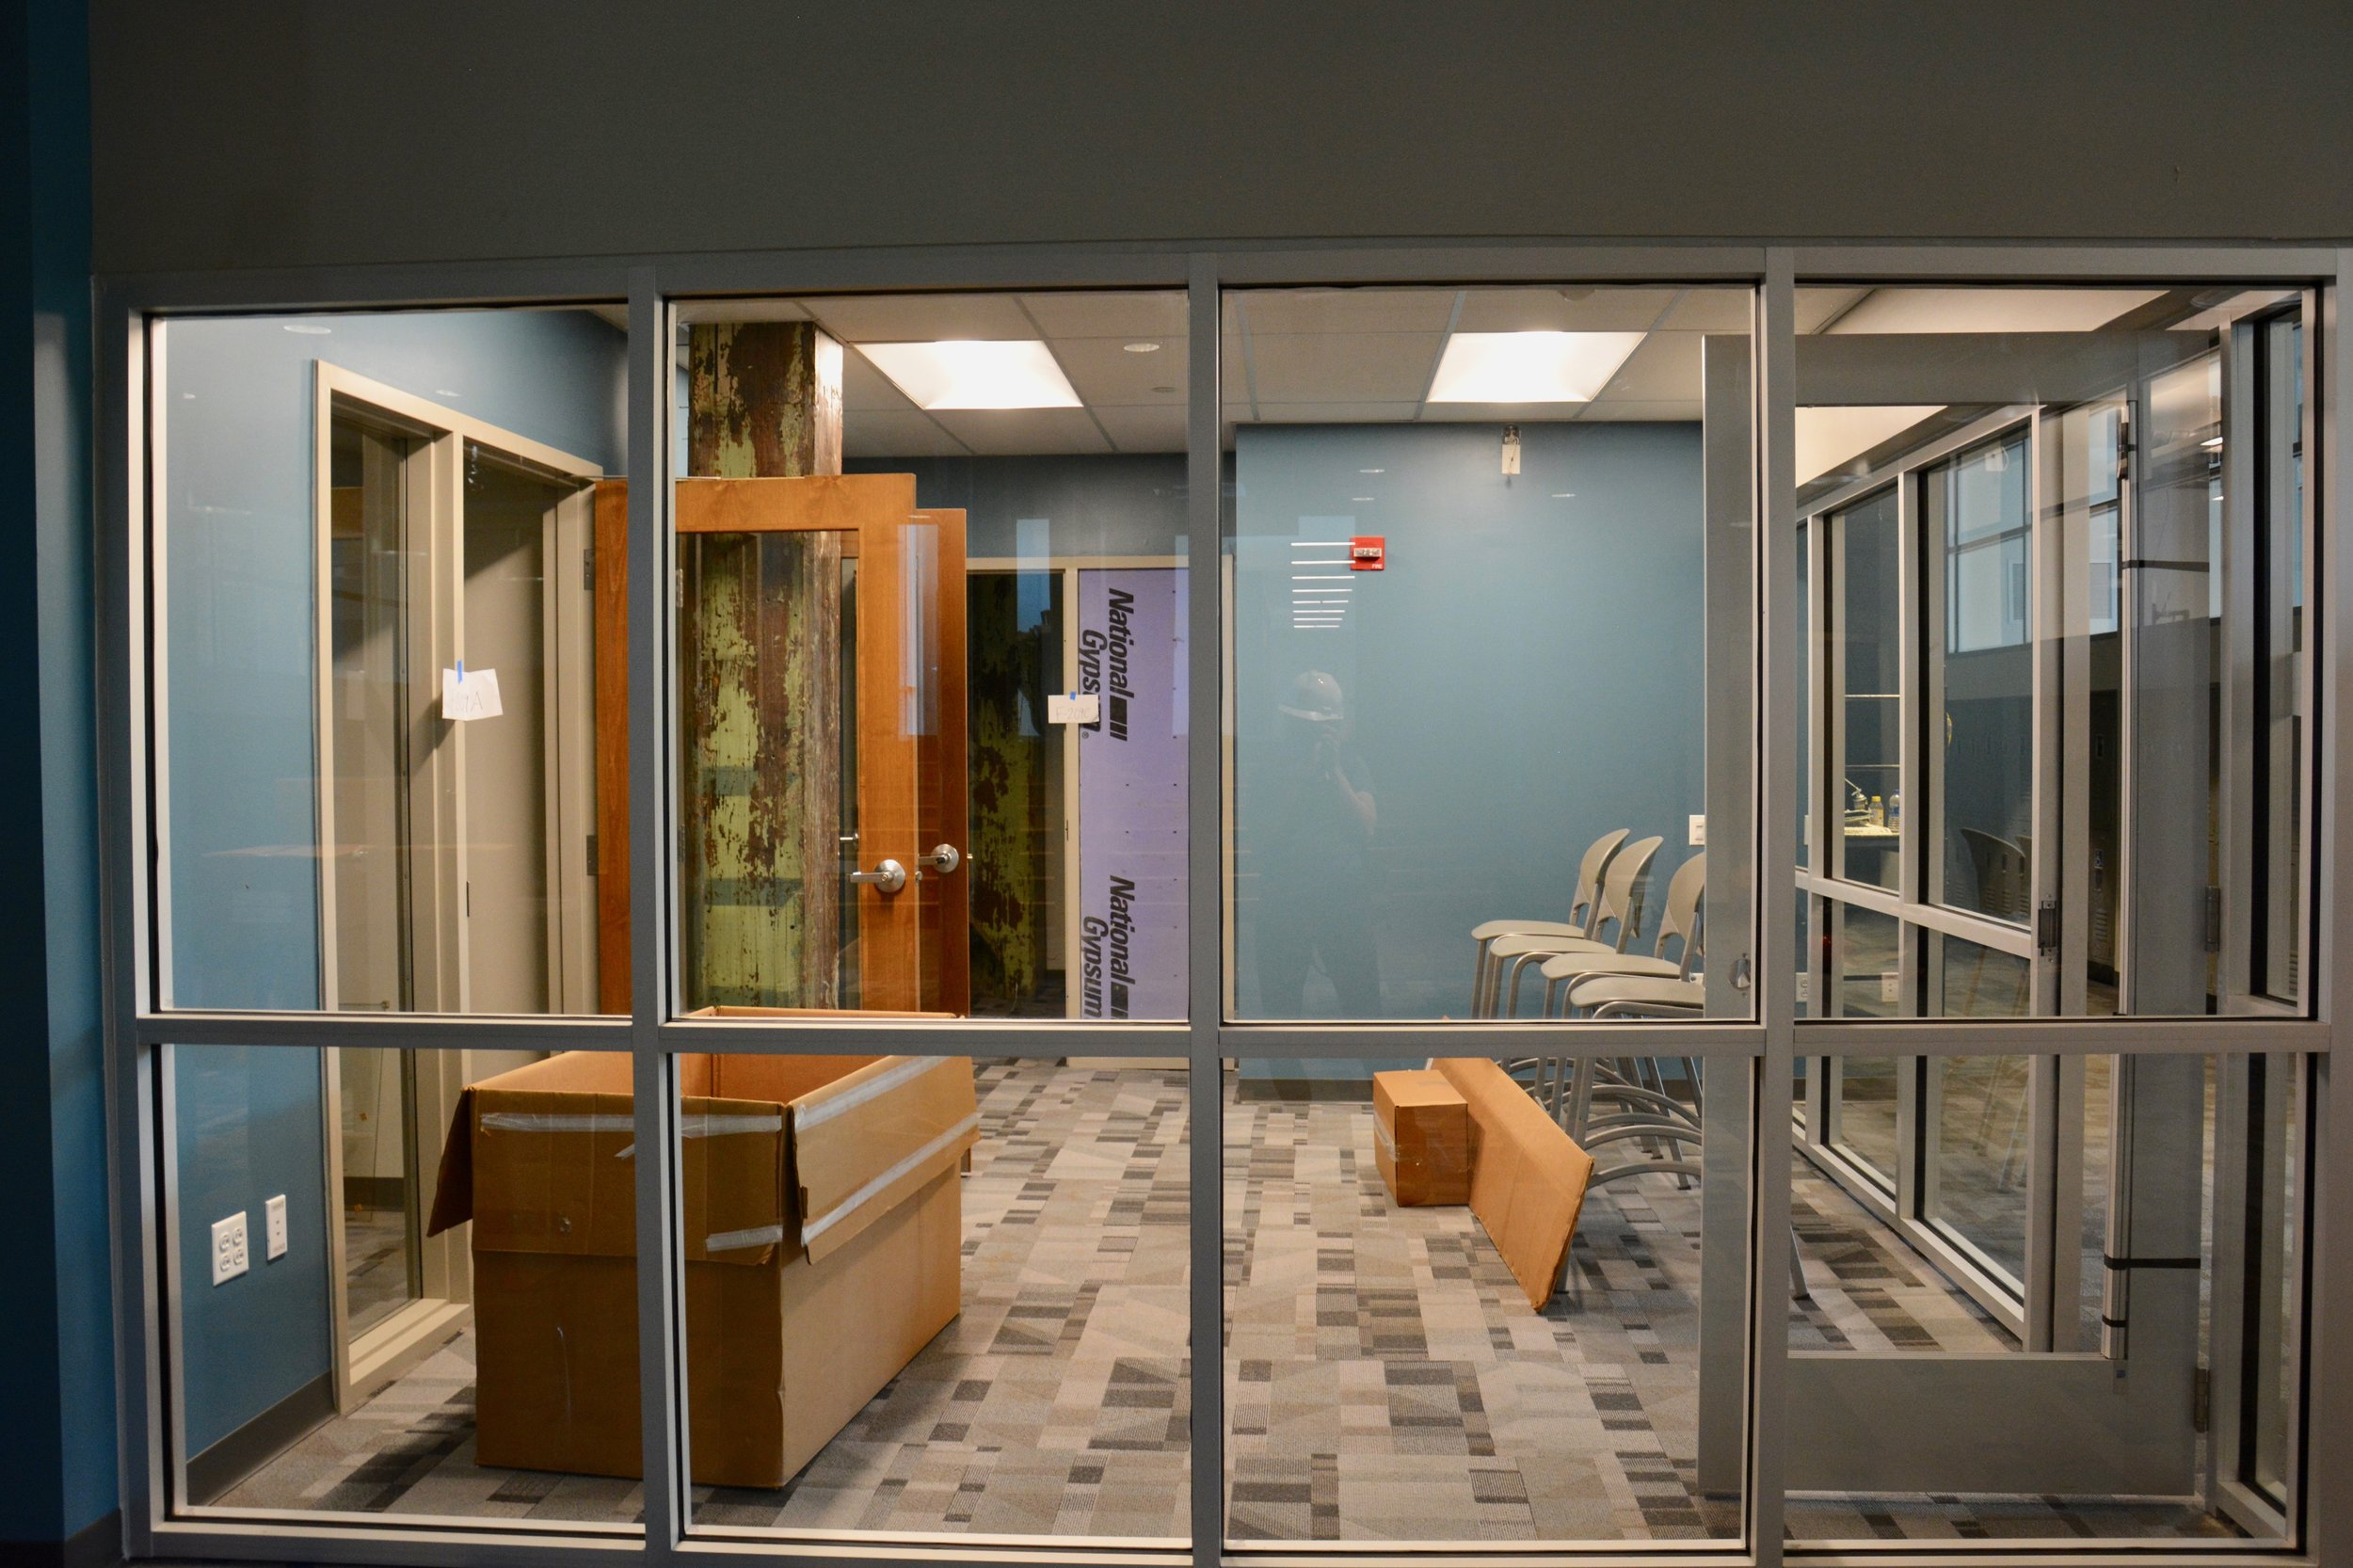 College Counseling Office and meeting space, which will feature a laptop bar.